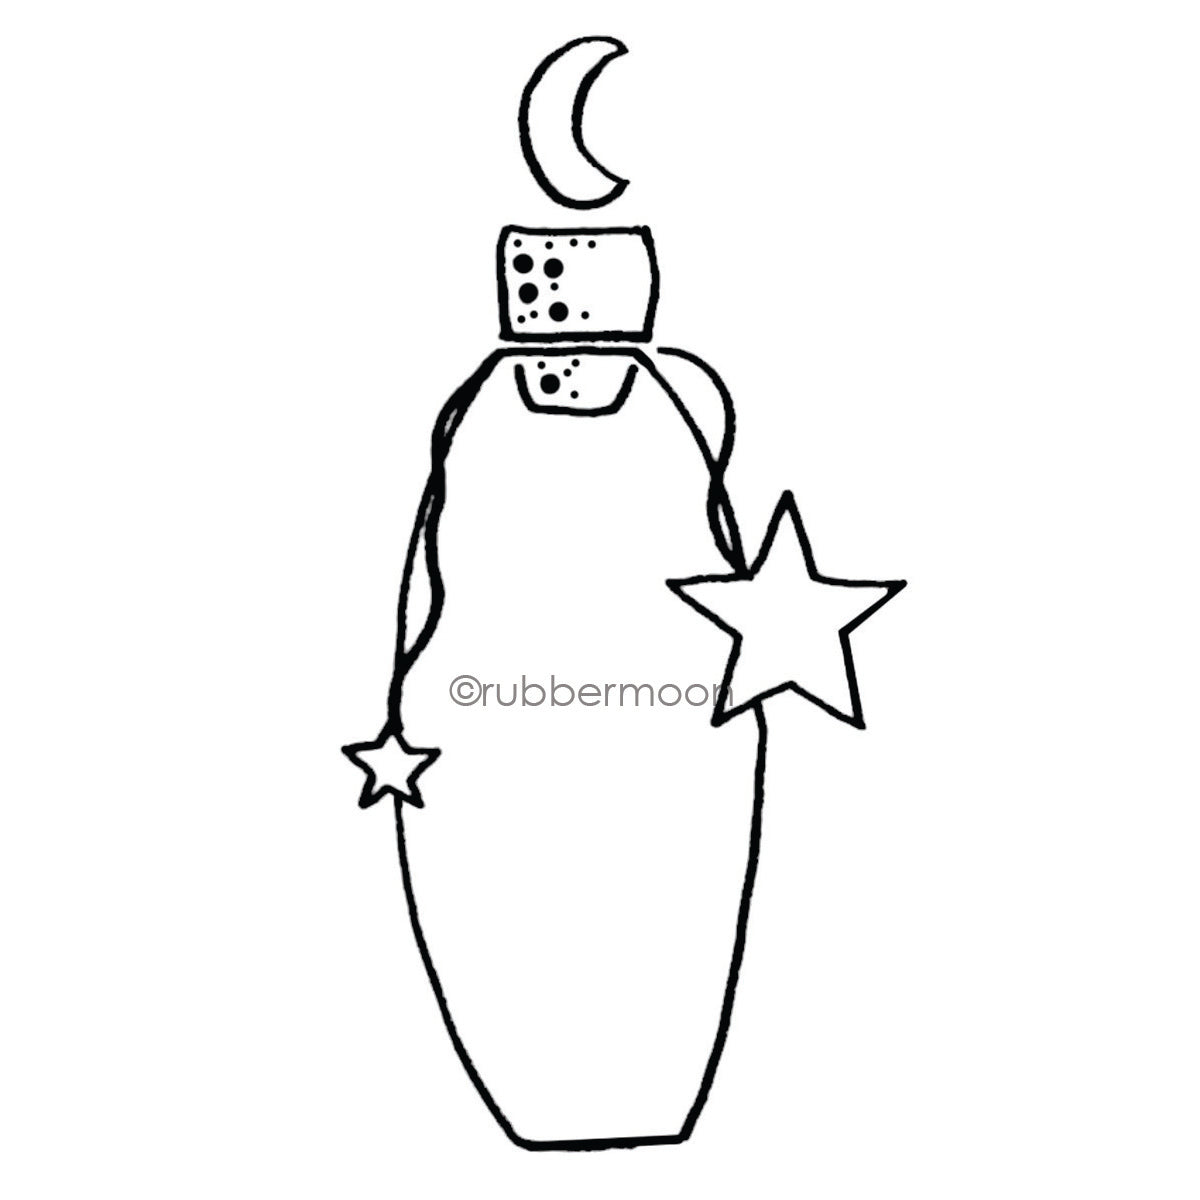 Sandee Setliff | SS7293I - Bottle o' Moonbeams - Rubber Art Stamp